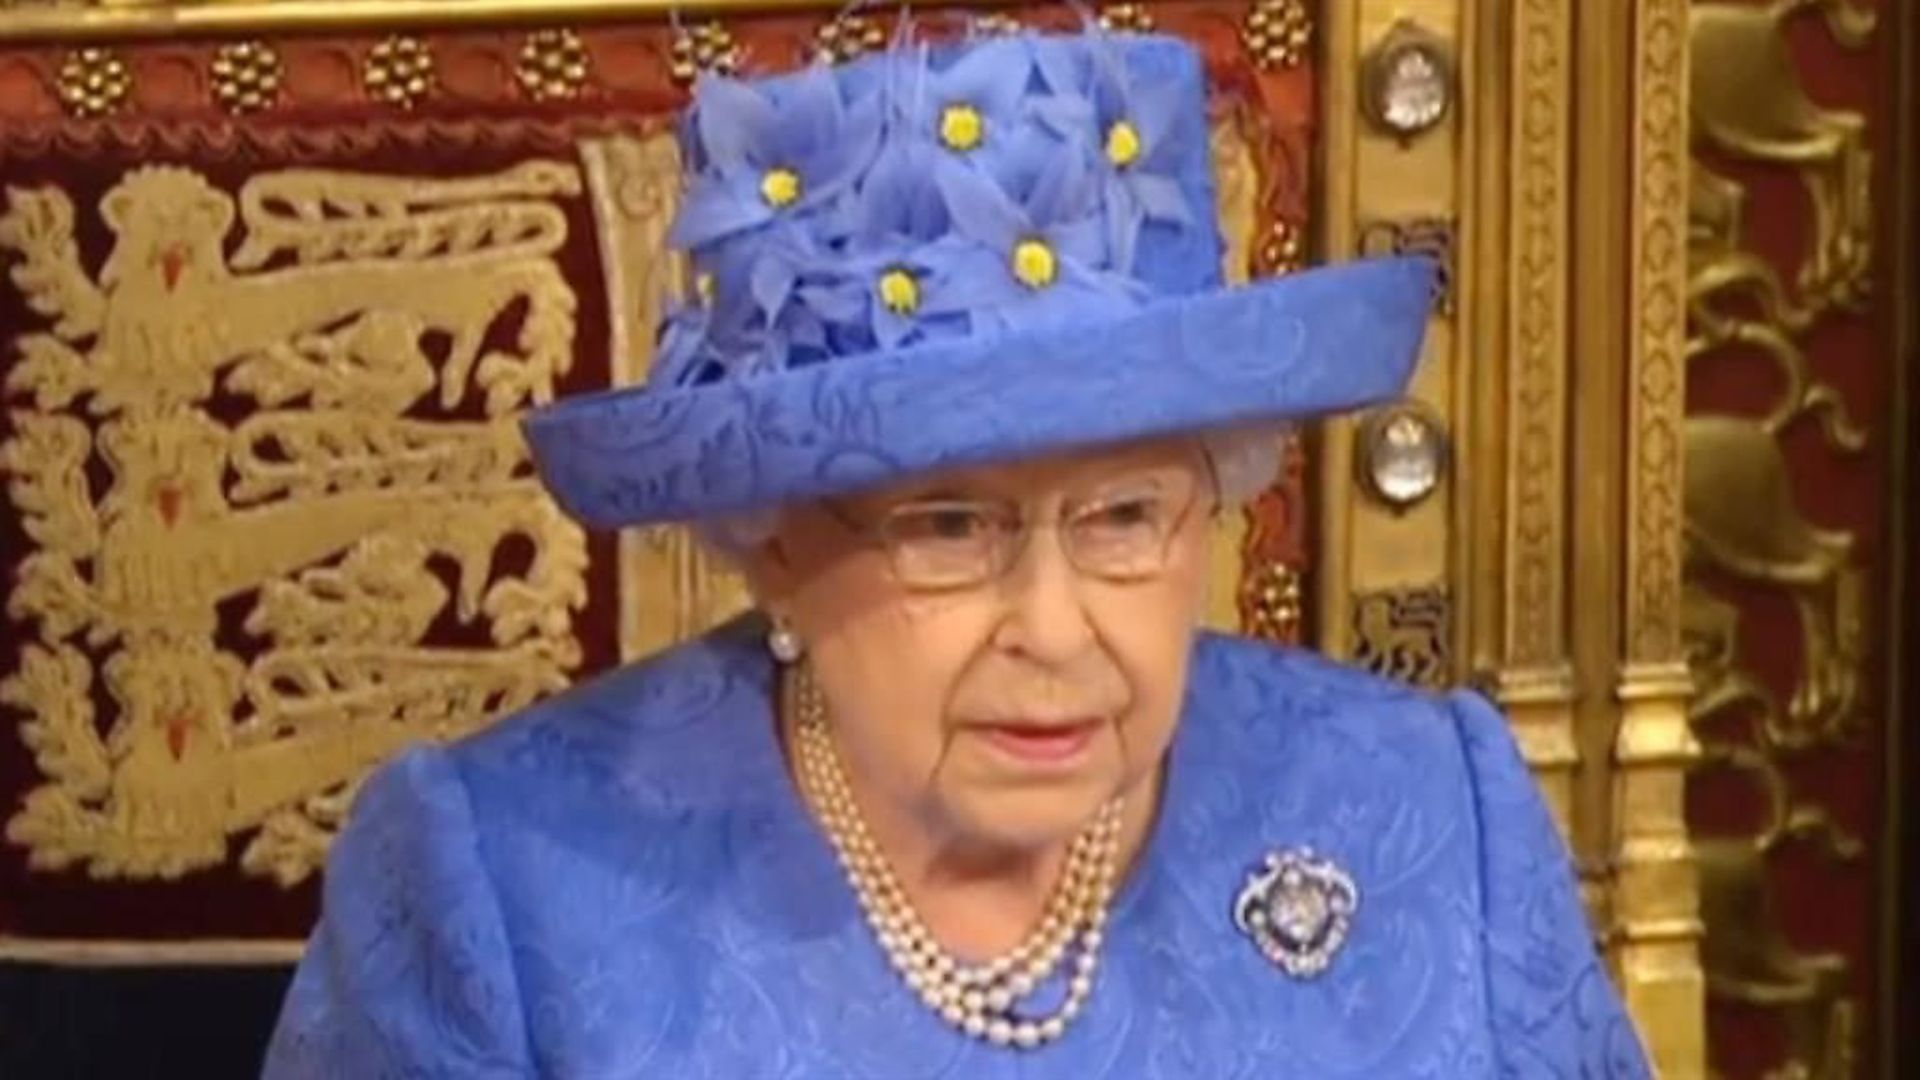 The Queen in blue and yellow at the state opening of parliament in 2017. Photograph: PA. - Credit: Archant